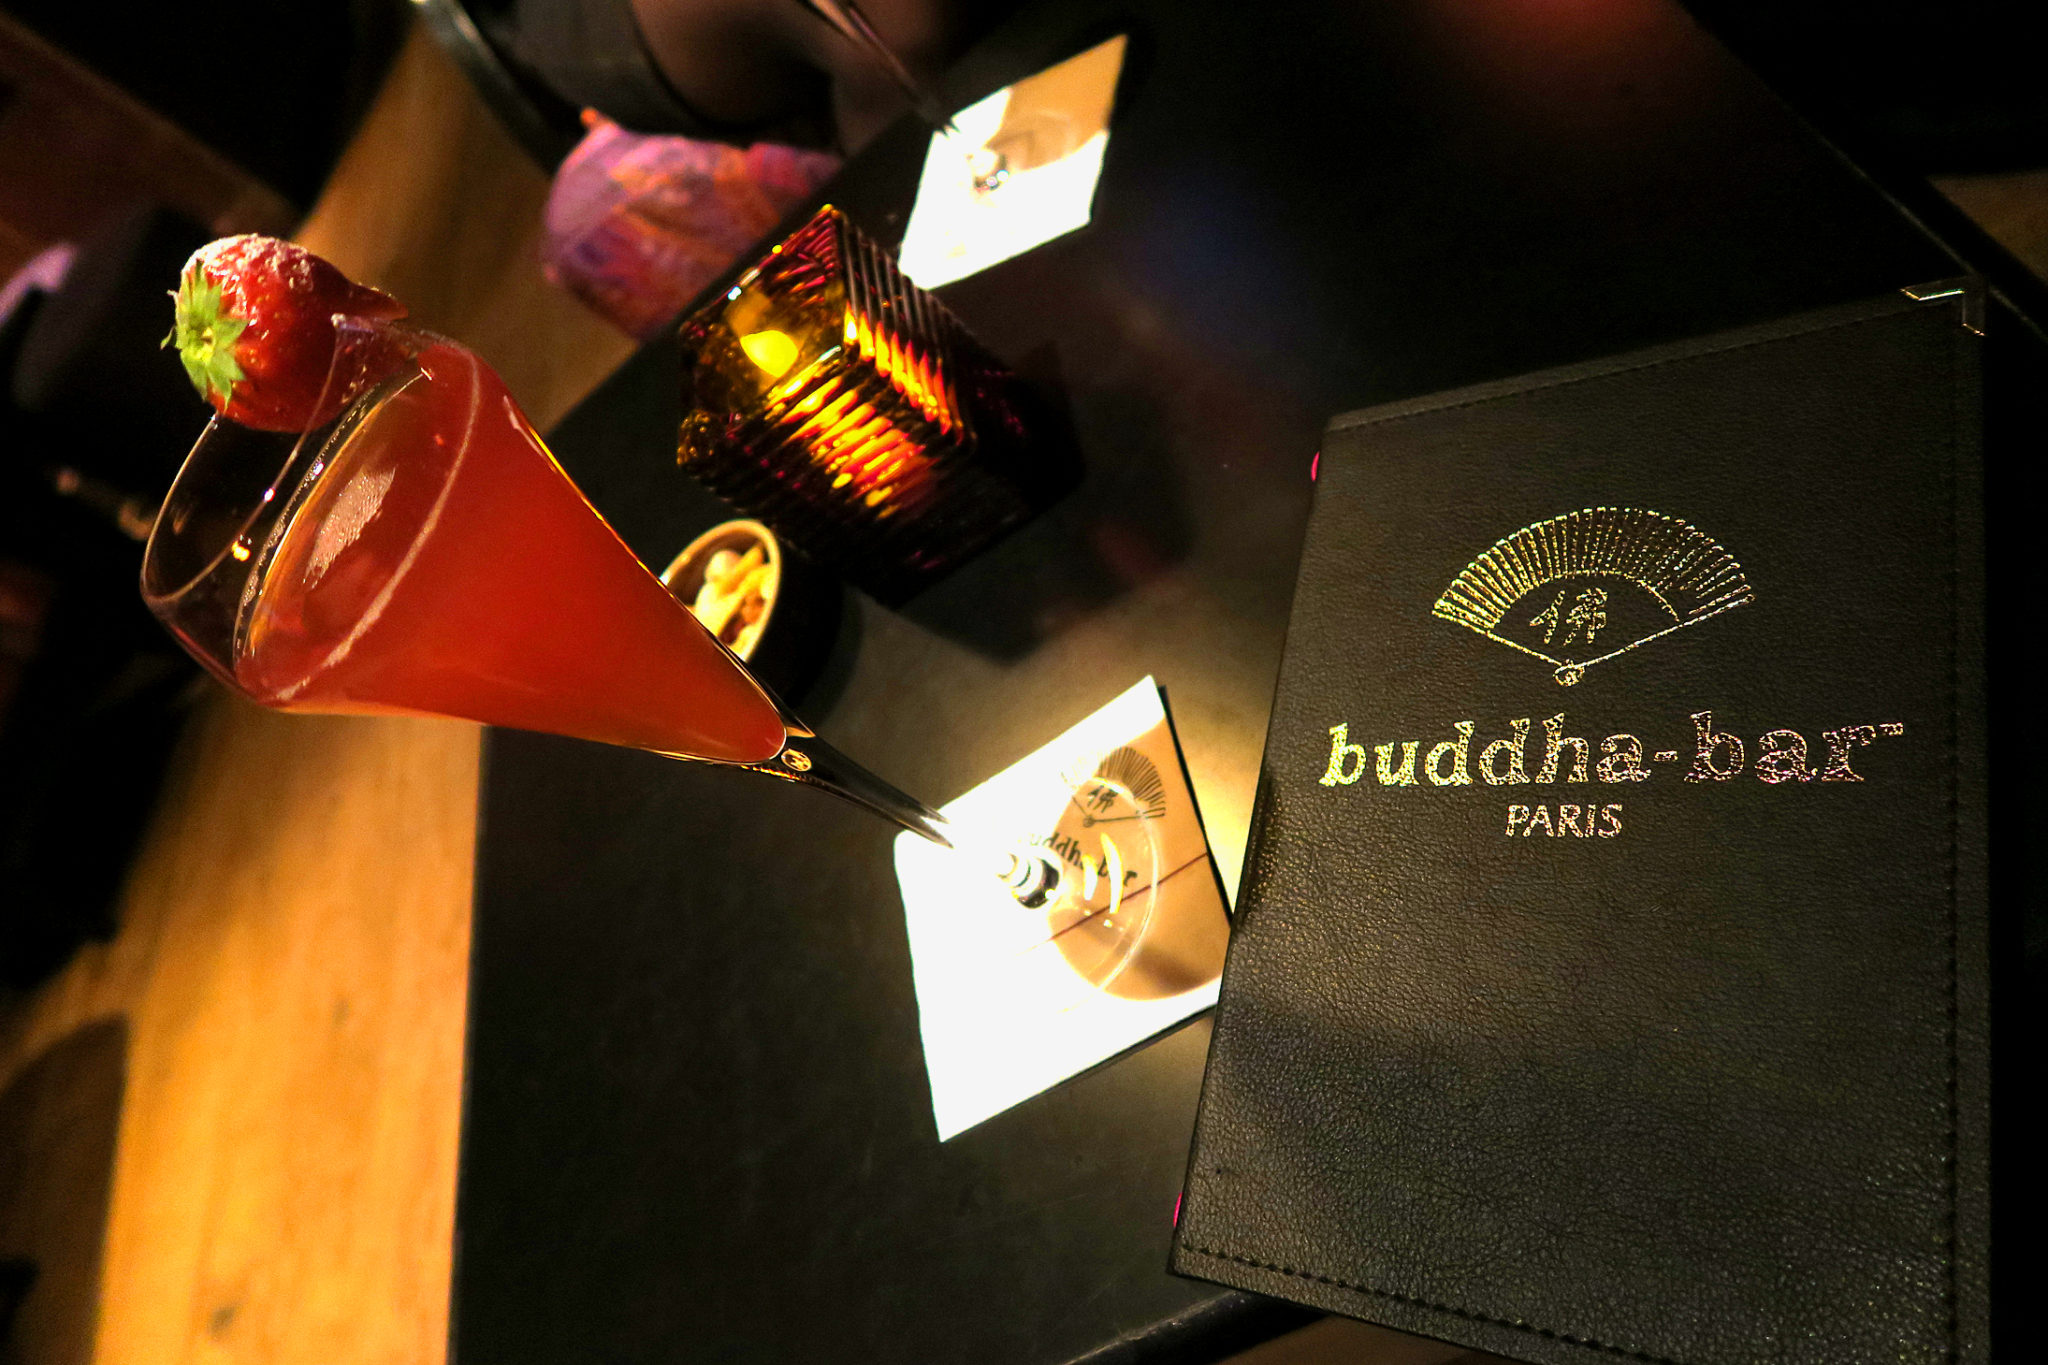 Hemaposesesvalises_buddha_bar_paris_cocktail_sortie_adresse